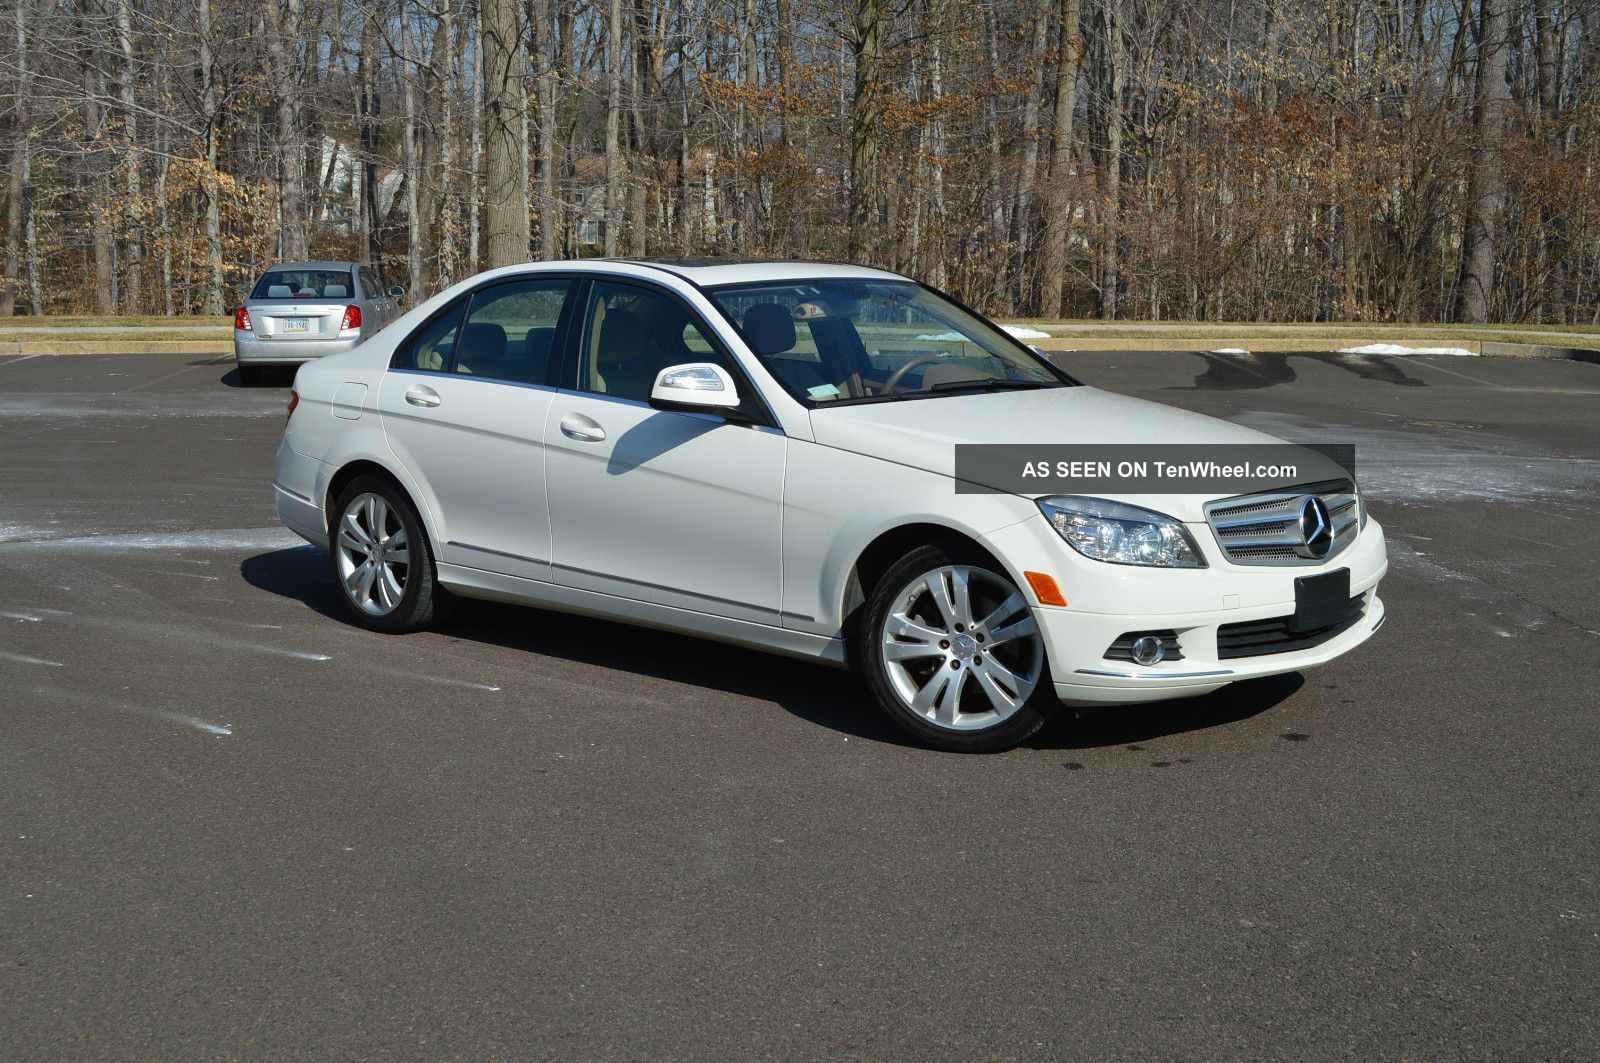 2008 mercedes benz c300 4matic luxury sedan 4 door 3 0l for Mercedes benz c300 sport 4matic